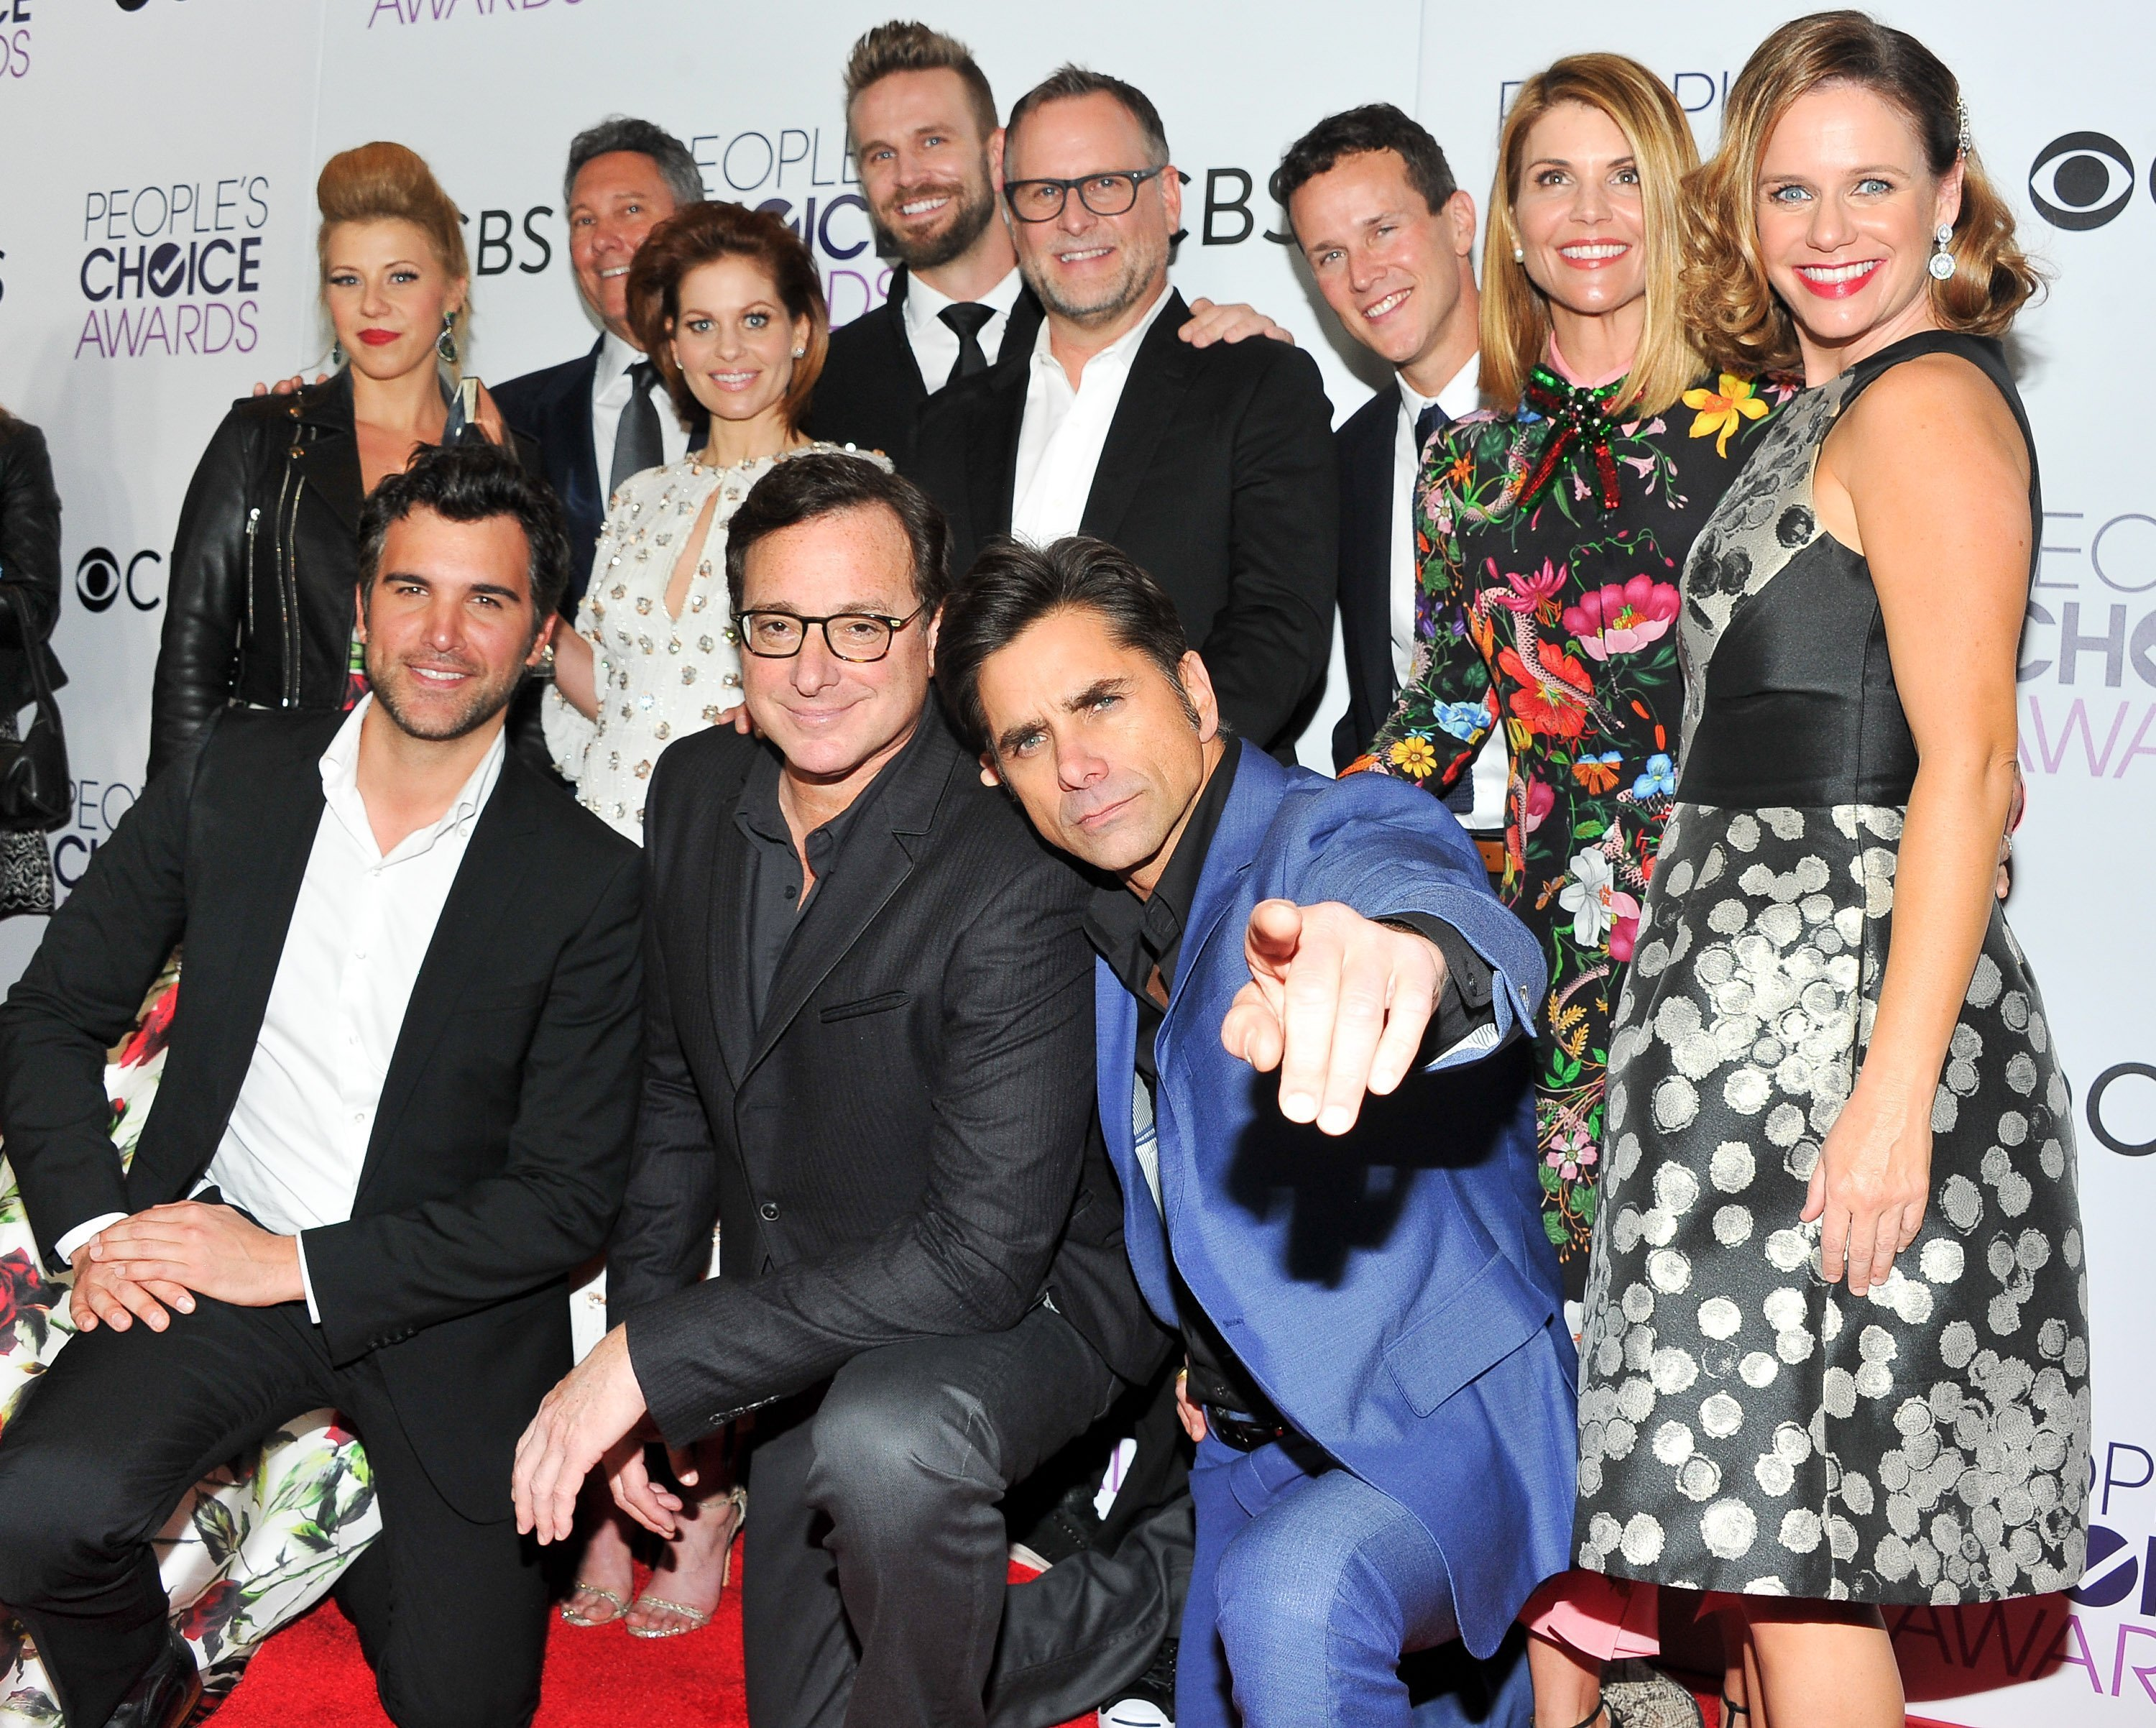 """Lori Loughlin and the rest of the """"Fuller House"""" cast at the 2017 People's Choice Awards 